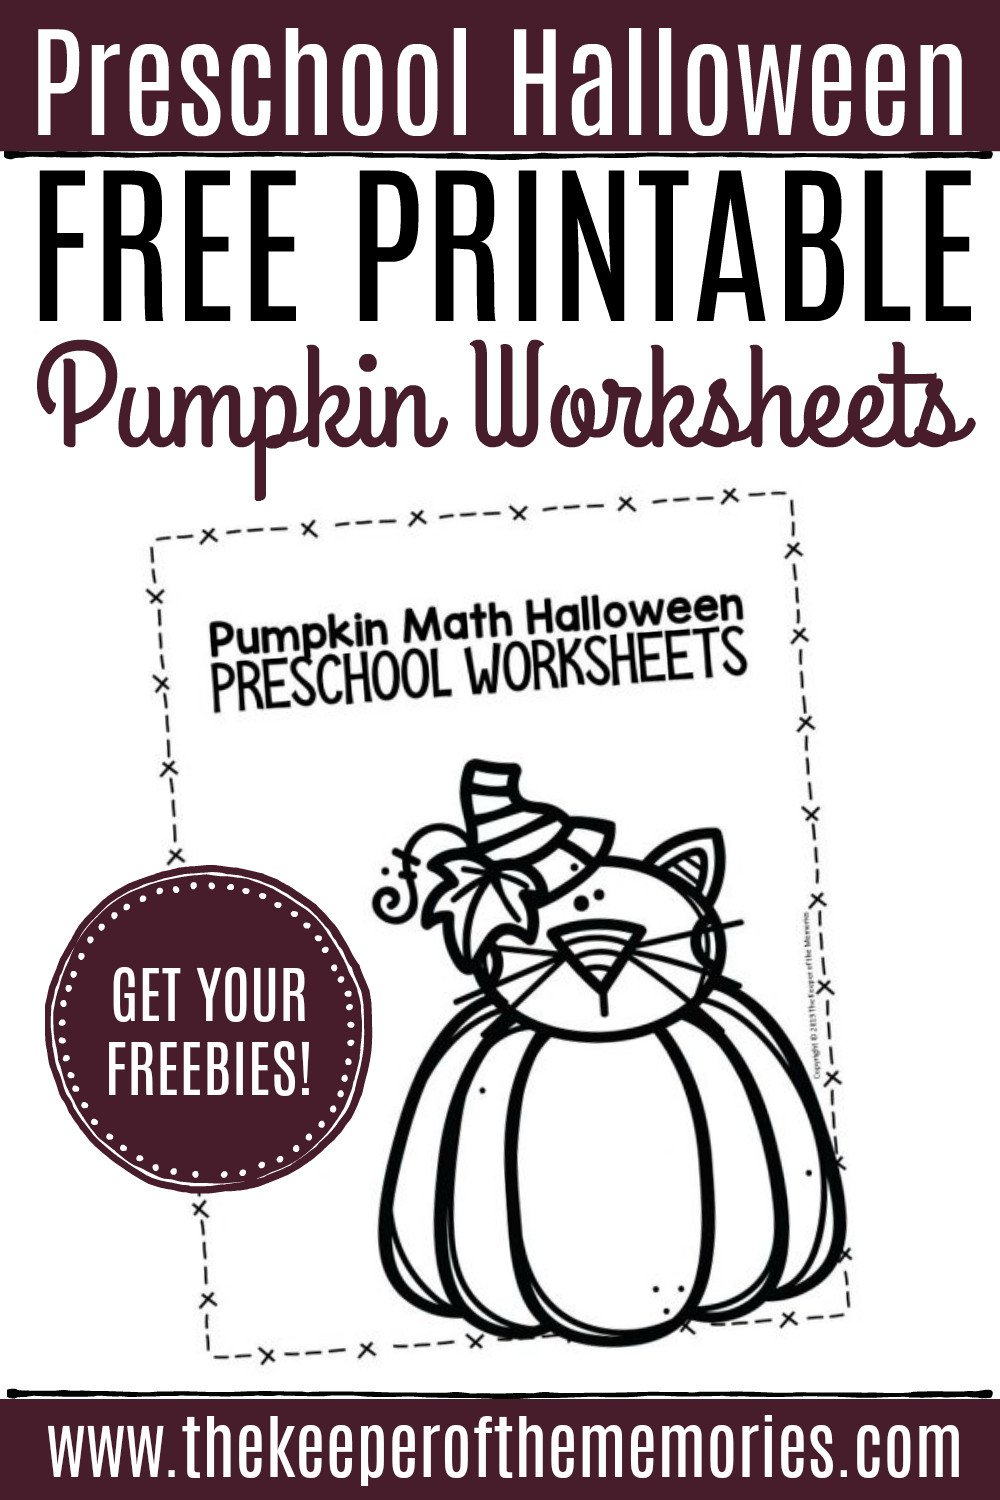 Pumpkin Worksheets for Kindergarten Free Printable Pumpkin Worksheets for Preschoolers